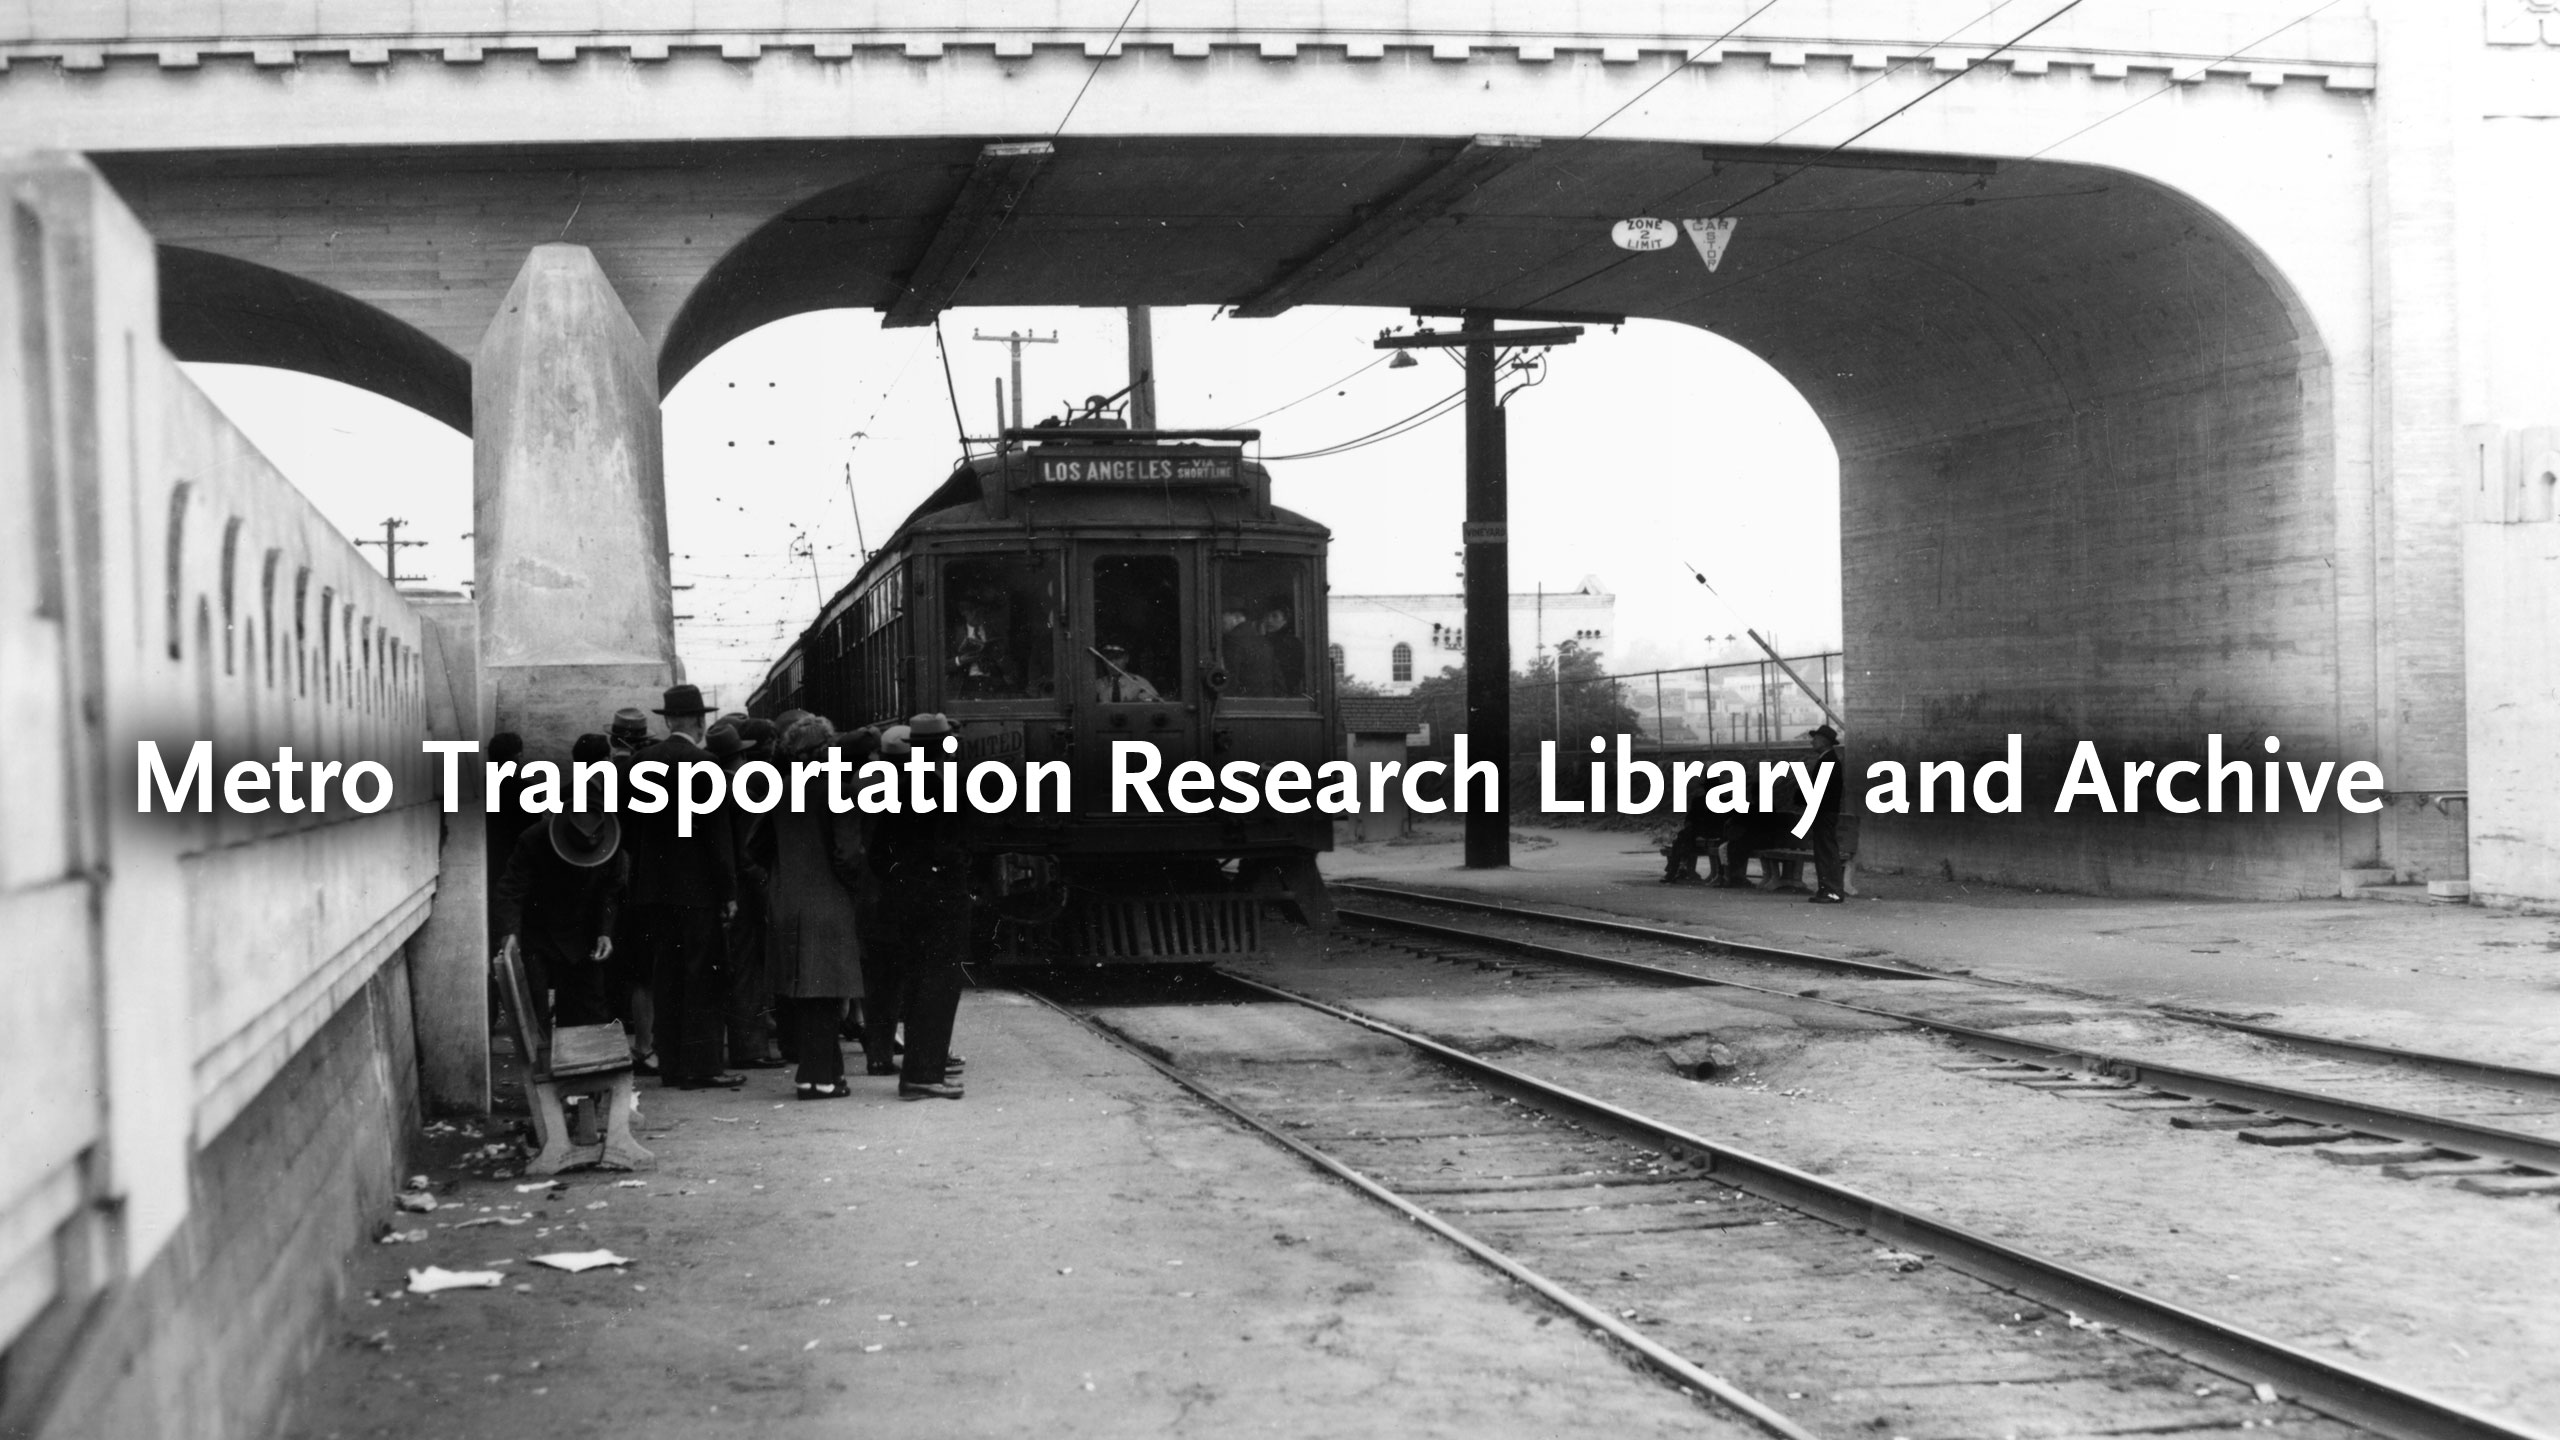 Los Angeles Metro Transportation Research Library